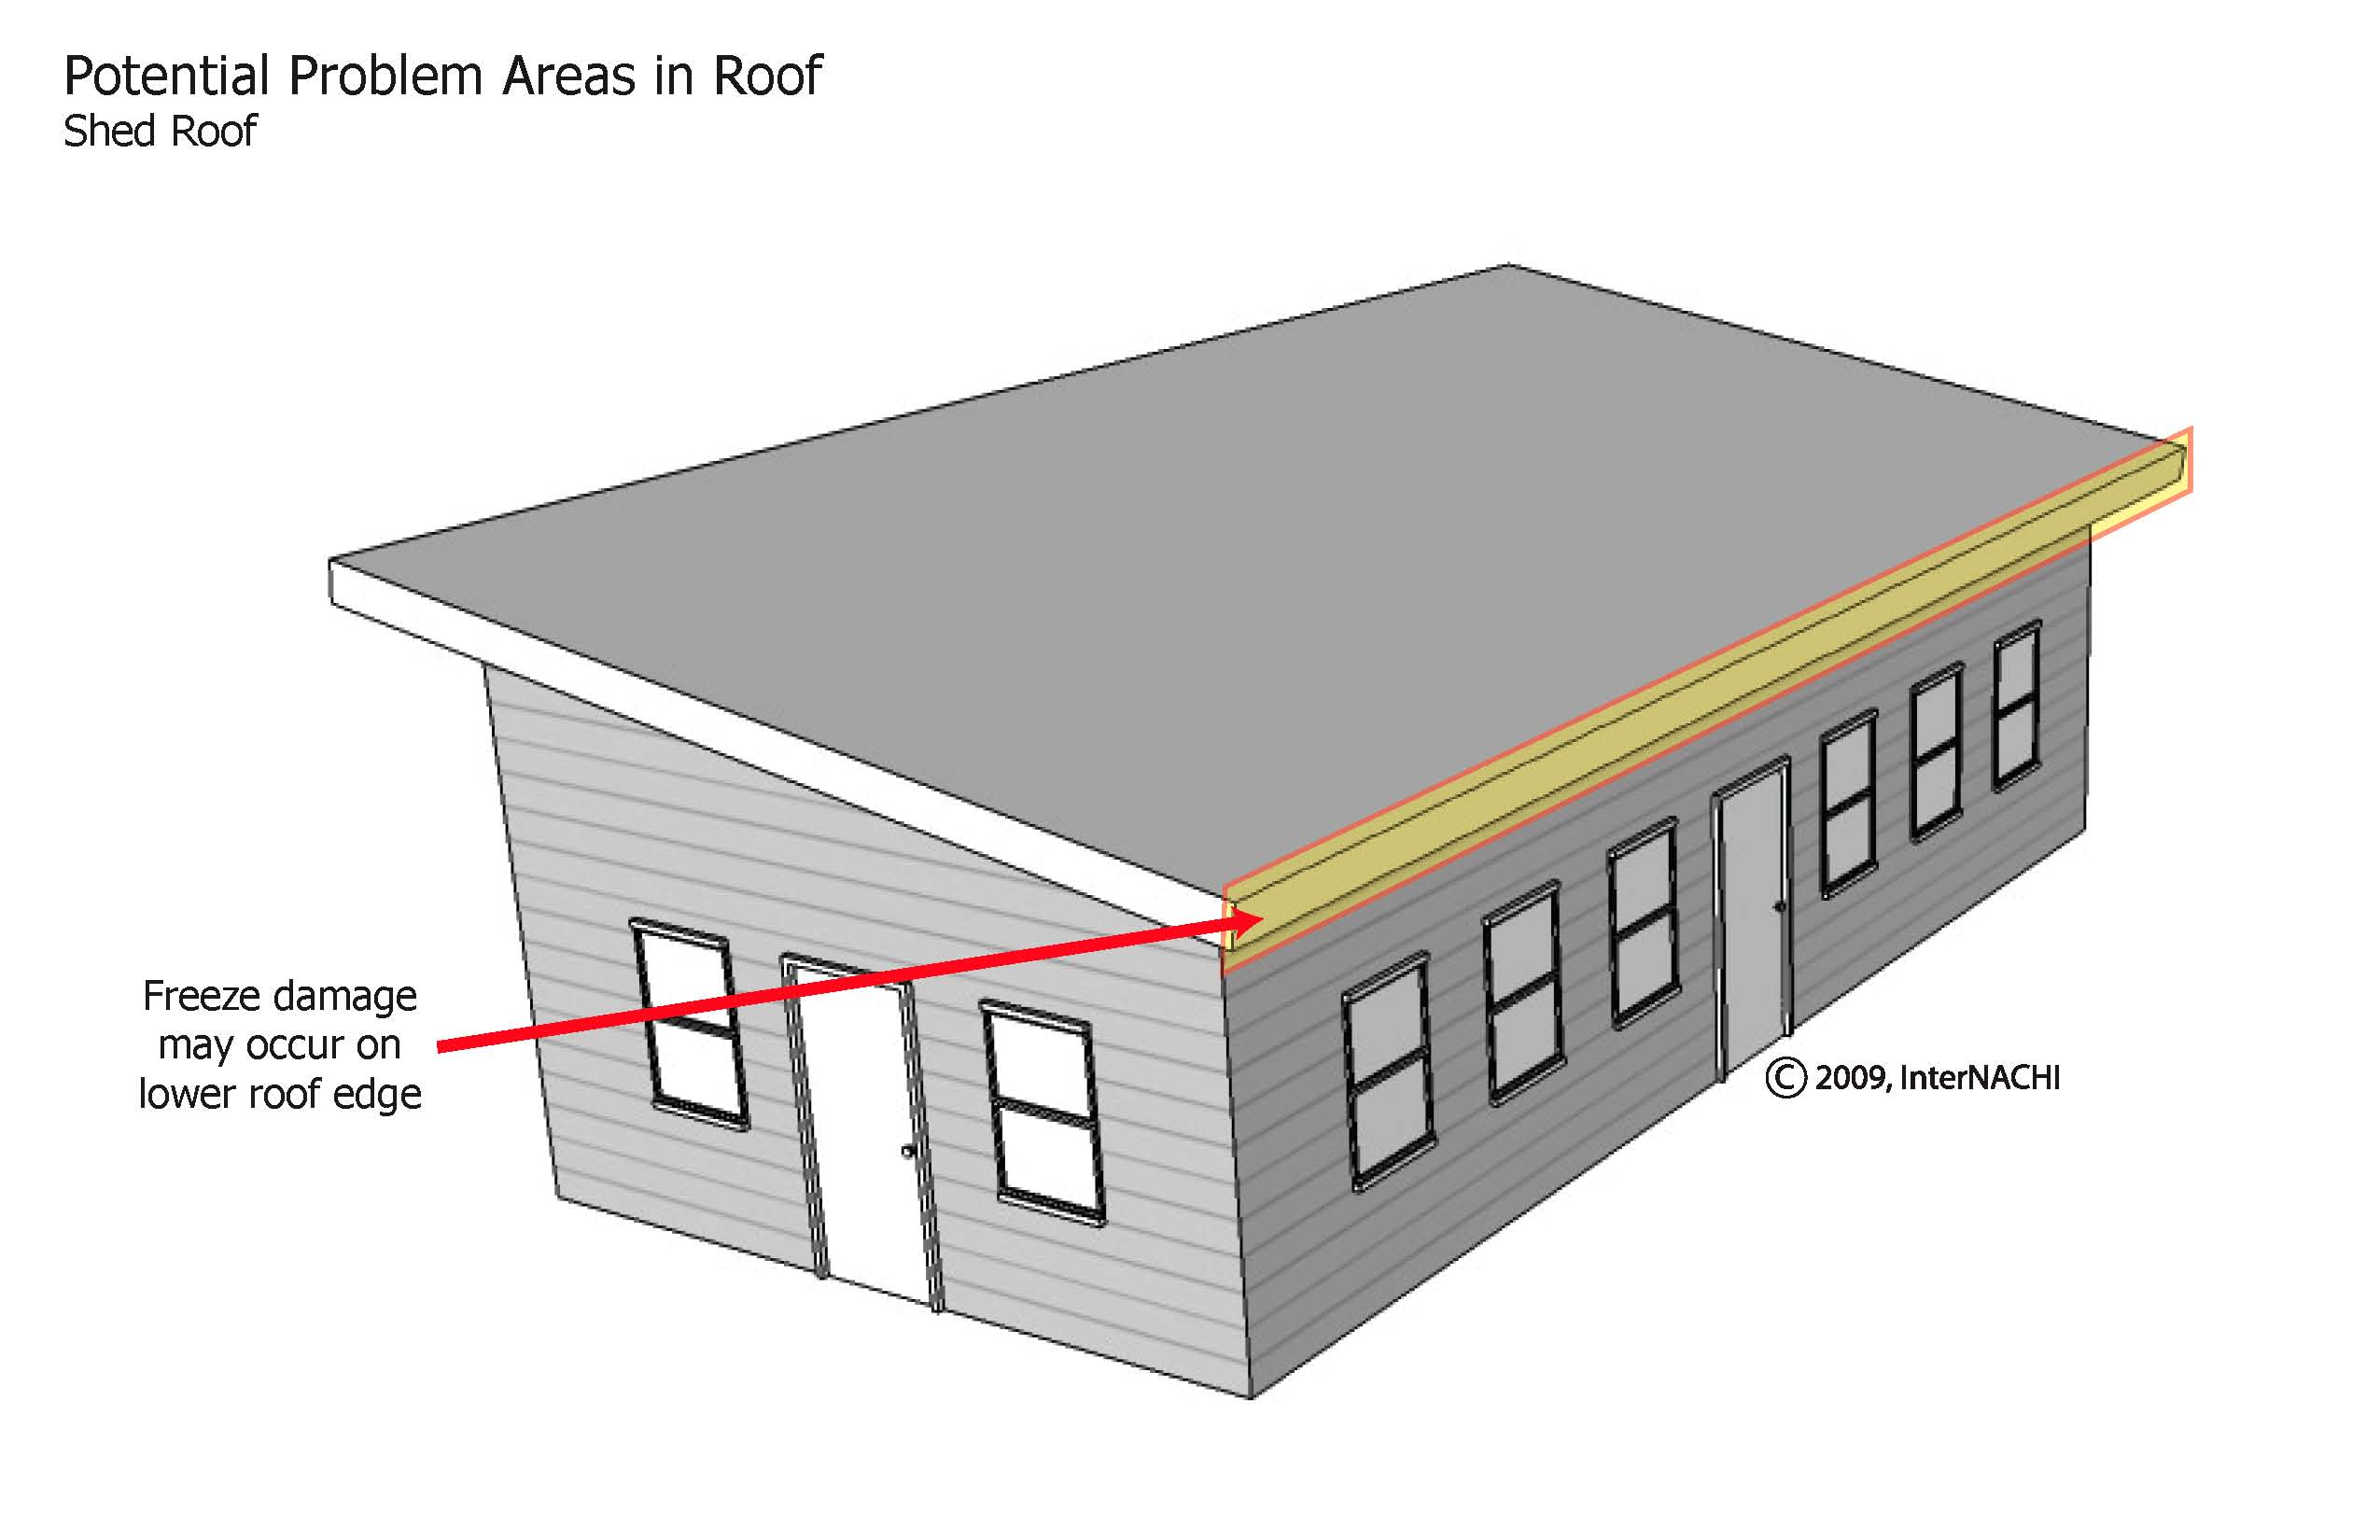 Shed roof problem areas.